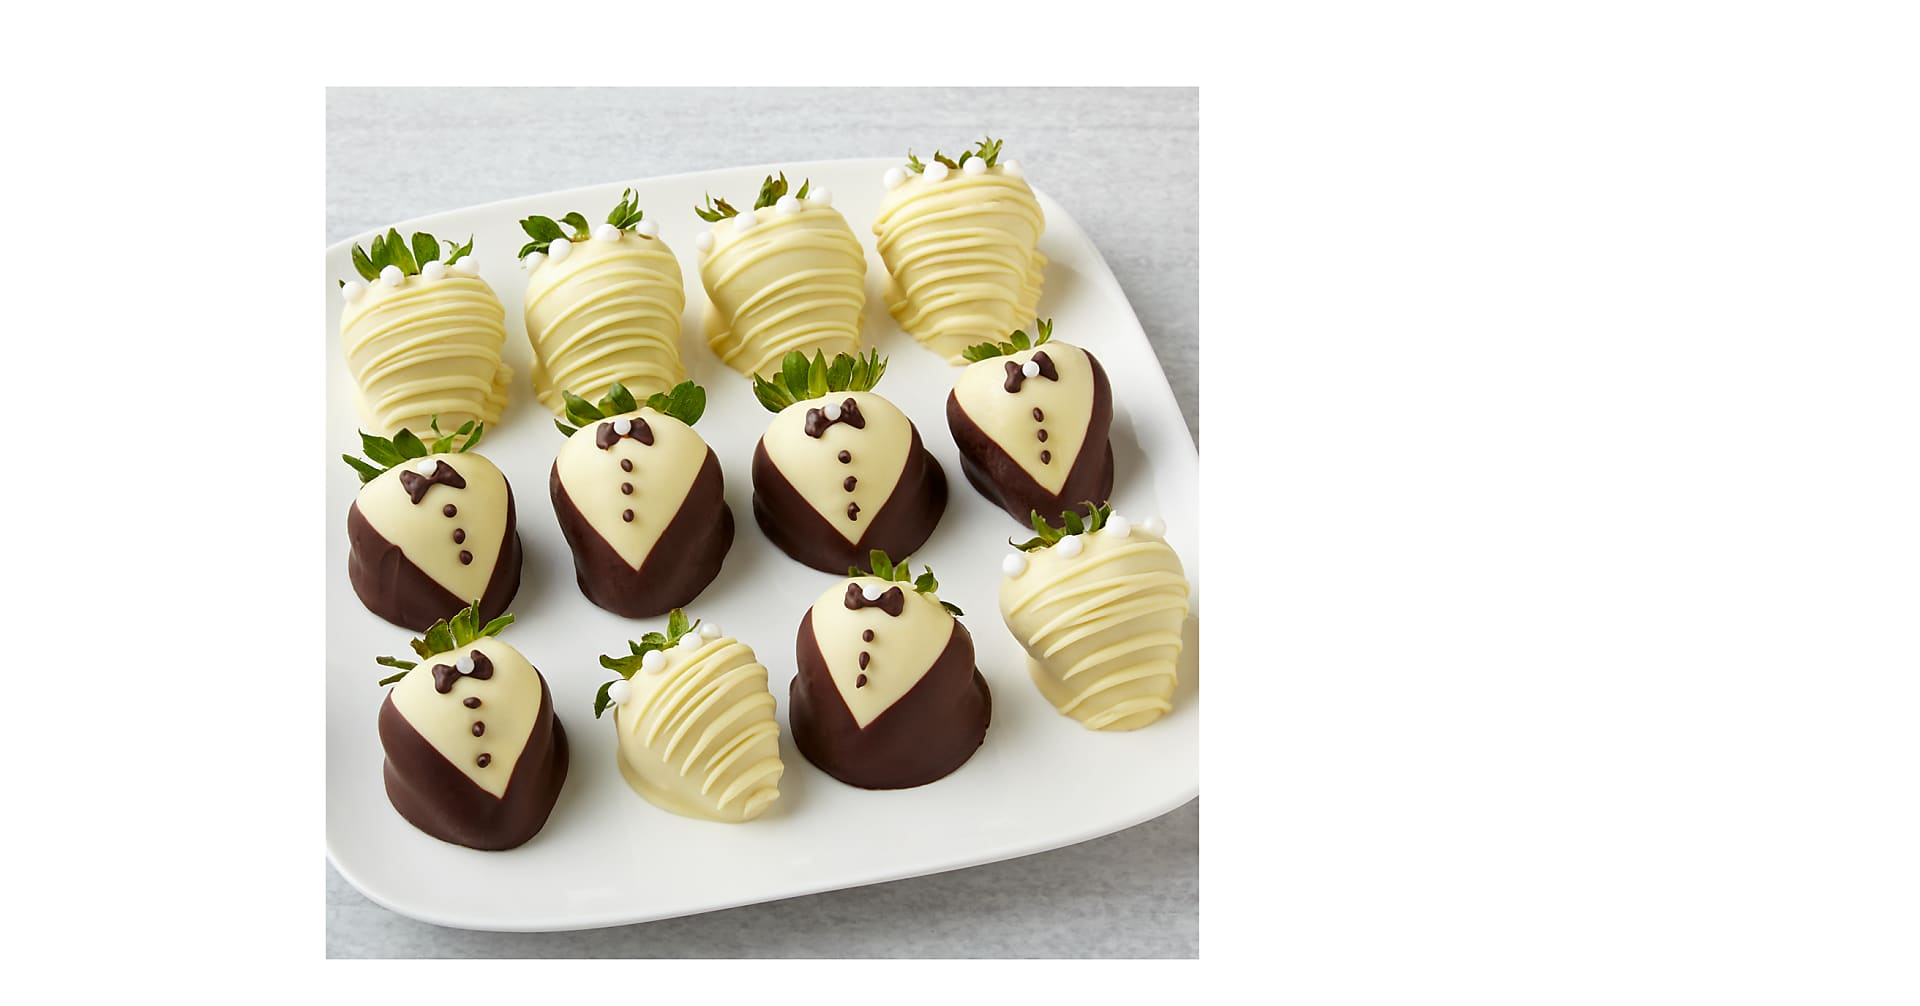 To the Bride and Groom Chocolate Covered Strawberries